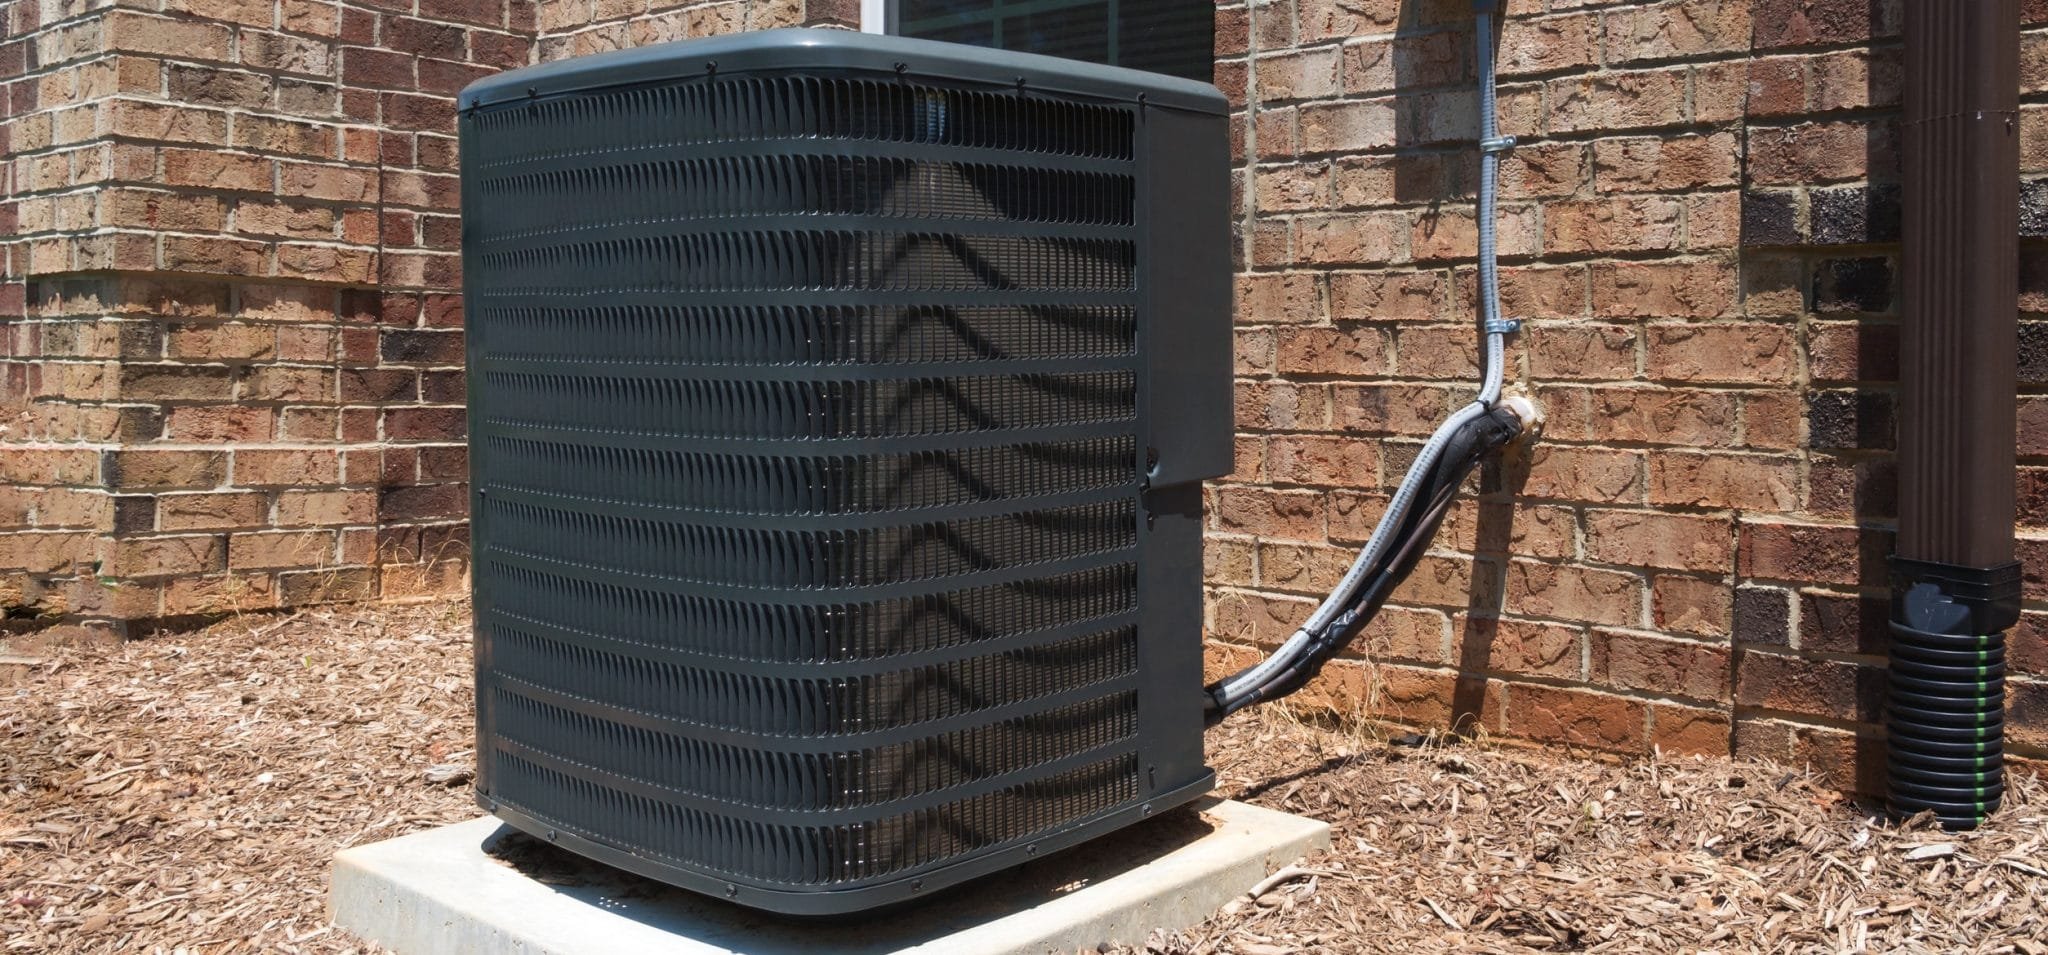 Air conditioning unit outside a home